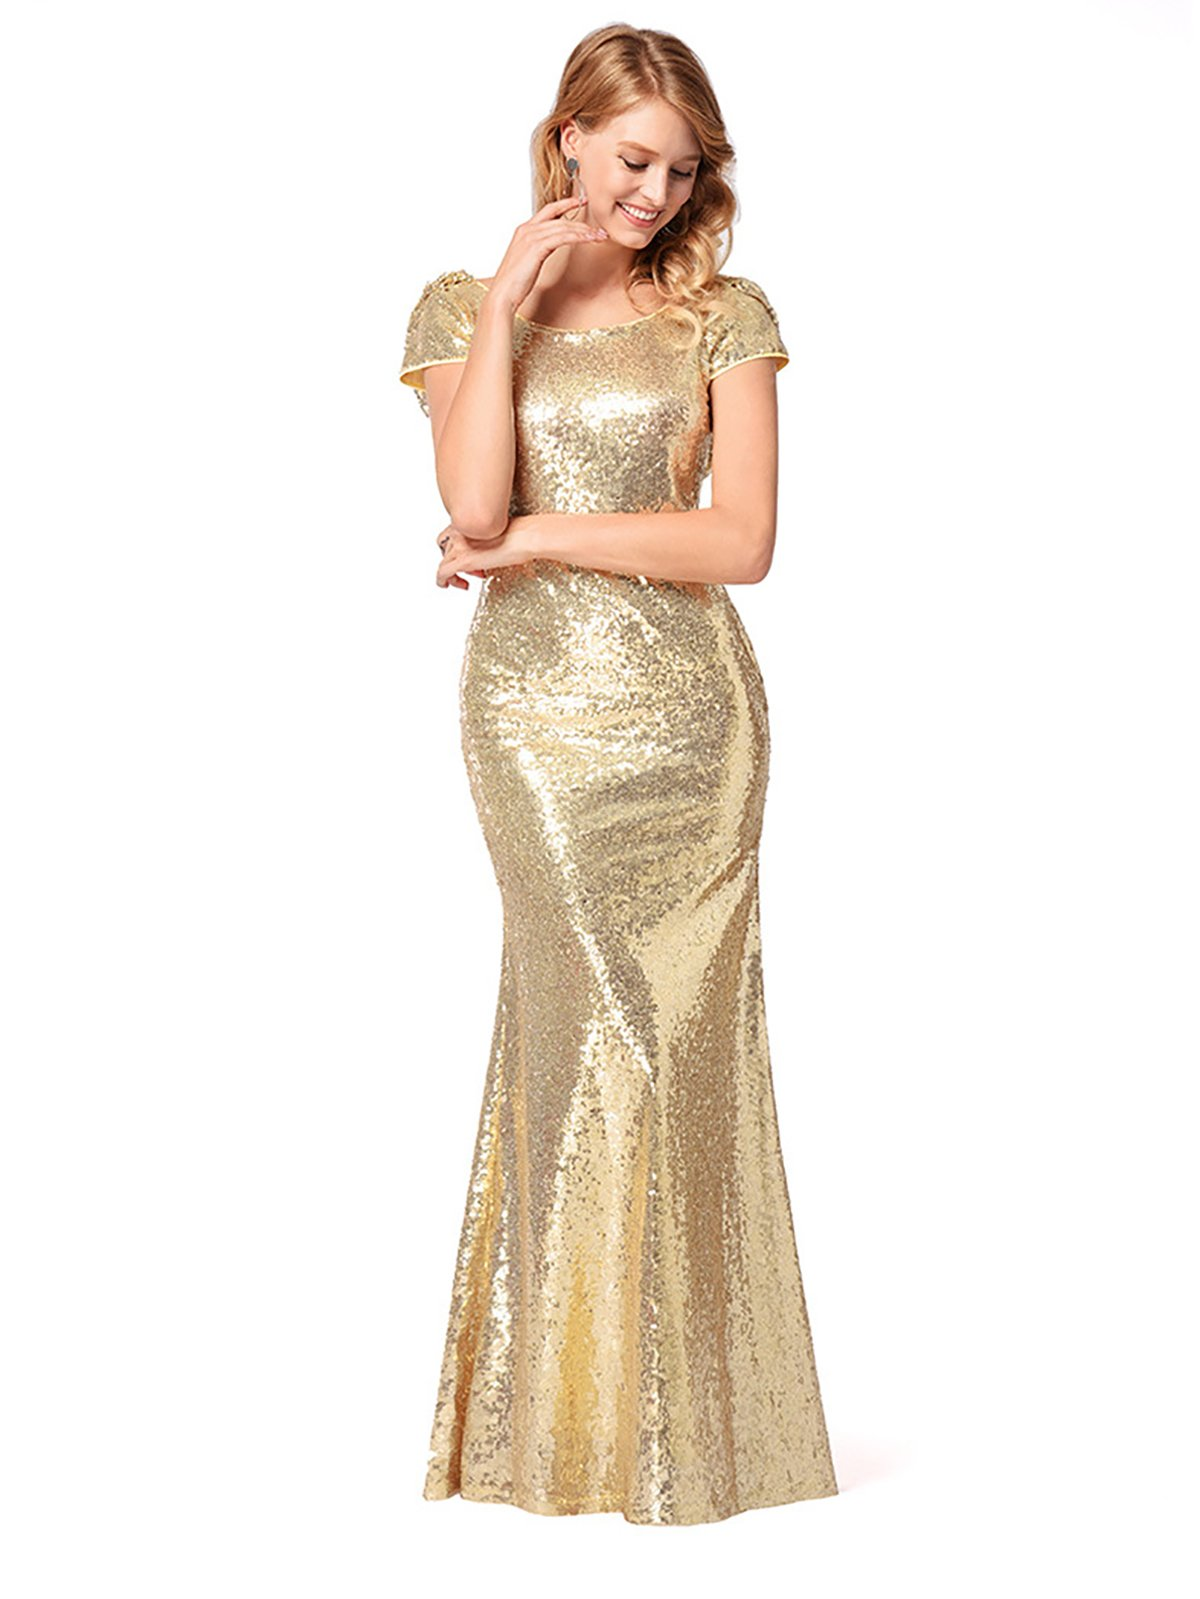 OMONSIM Gold Sequins Bridesmaid Dresses Formal Evening Gowns